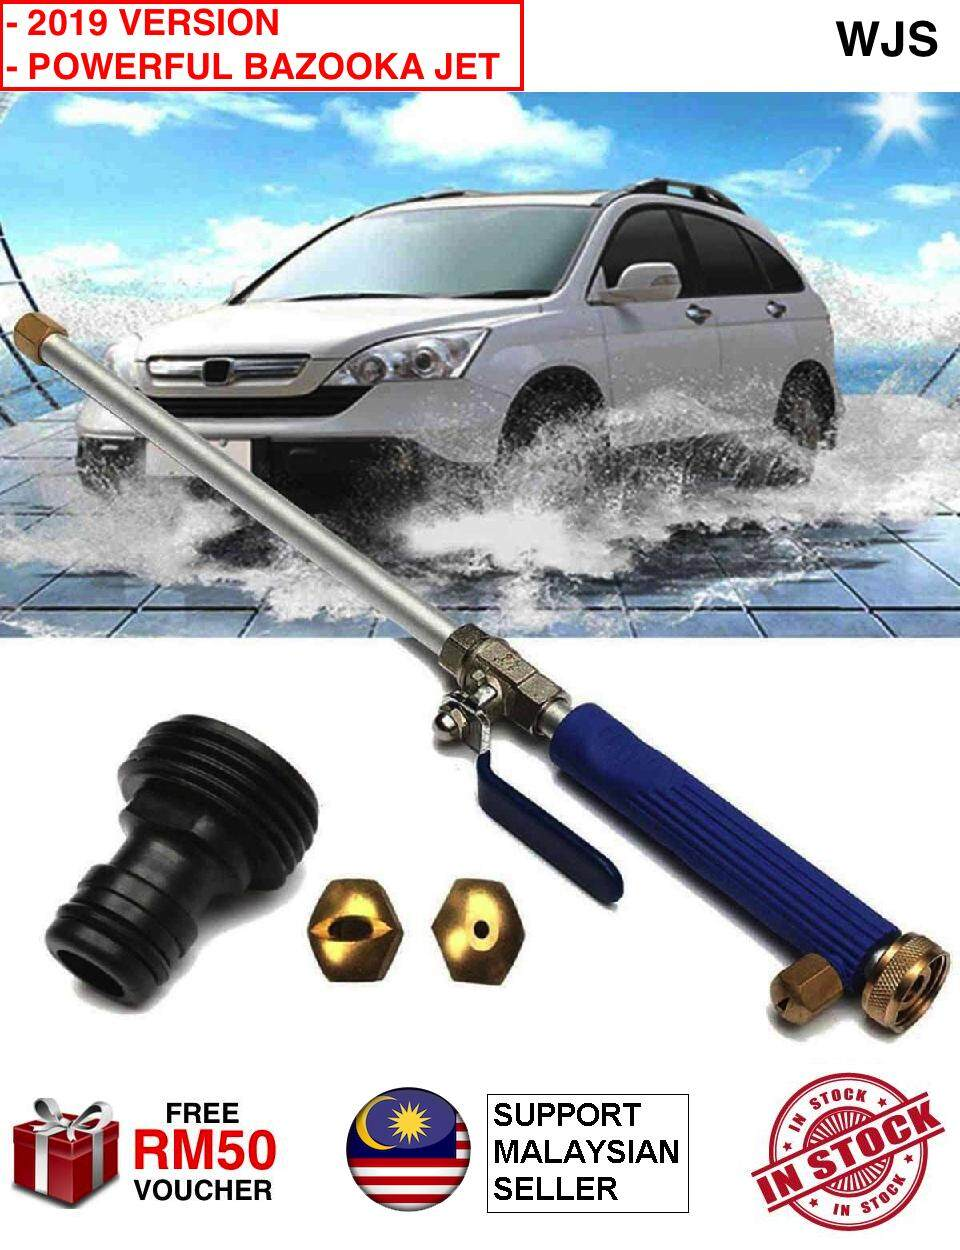 (2019 VERSION) WJS Water Jet Cleaning Solution - High Pressure Washer Spray Nozzle Water Jet Bazooka Hose Wand Attachment / Garden Watering Porch Patio Drain Washing Car Cleaning Tool Water Gun BLUE [FREE RM50 VOUCHER]